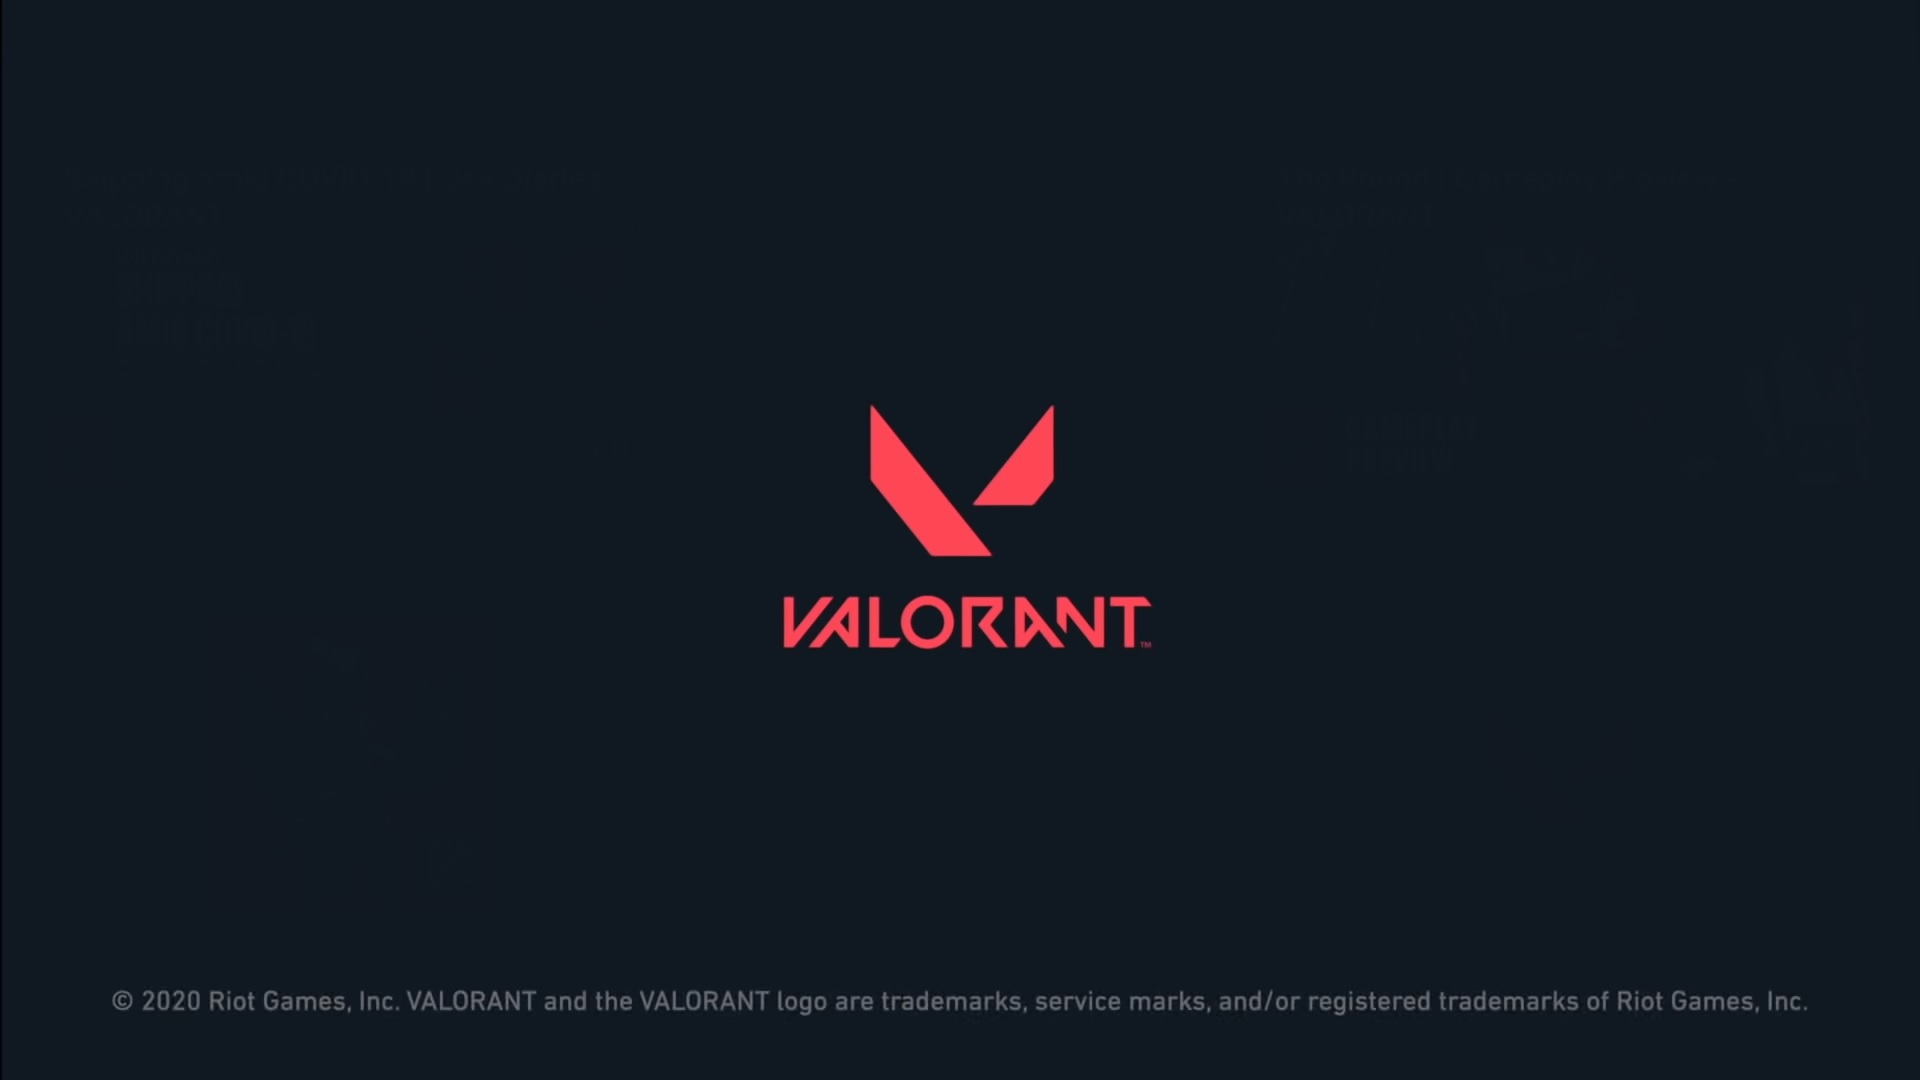 Valorant is Being Prototyped for Consoles, But It Won't Necessarily Happen